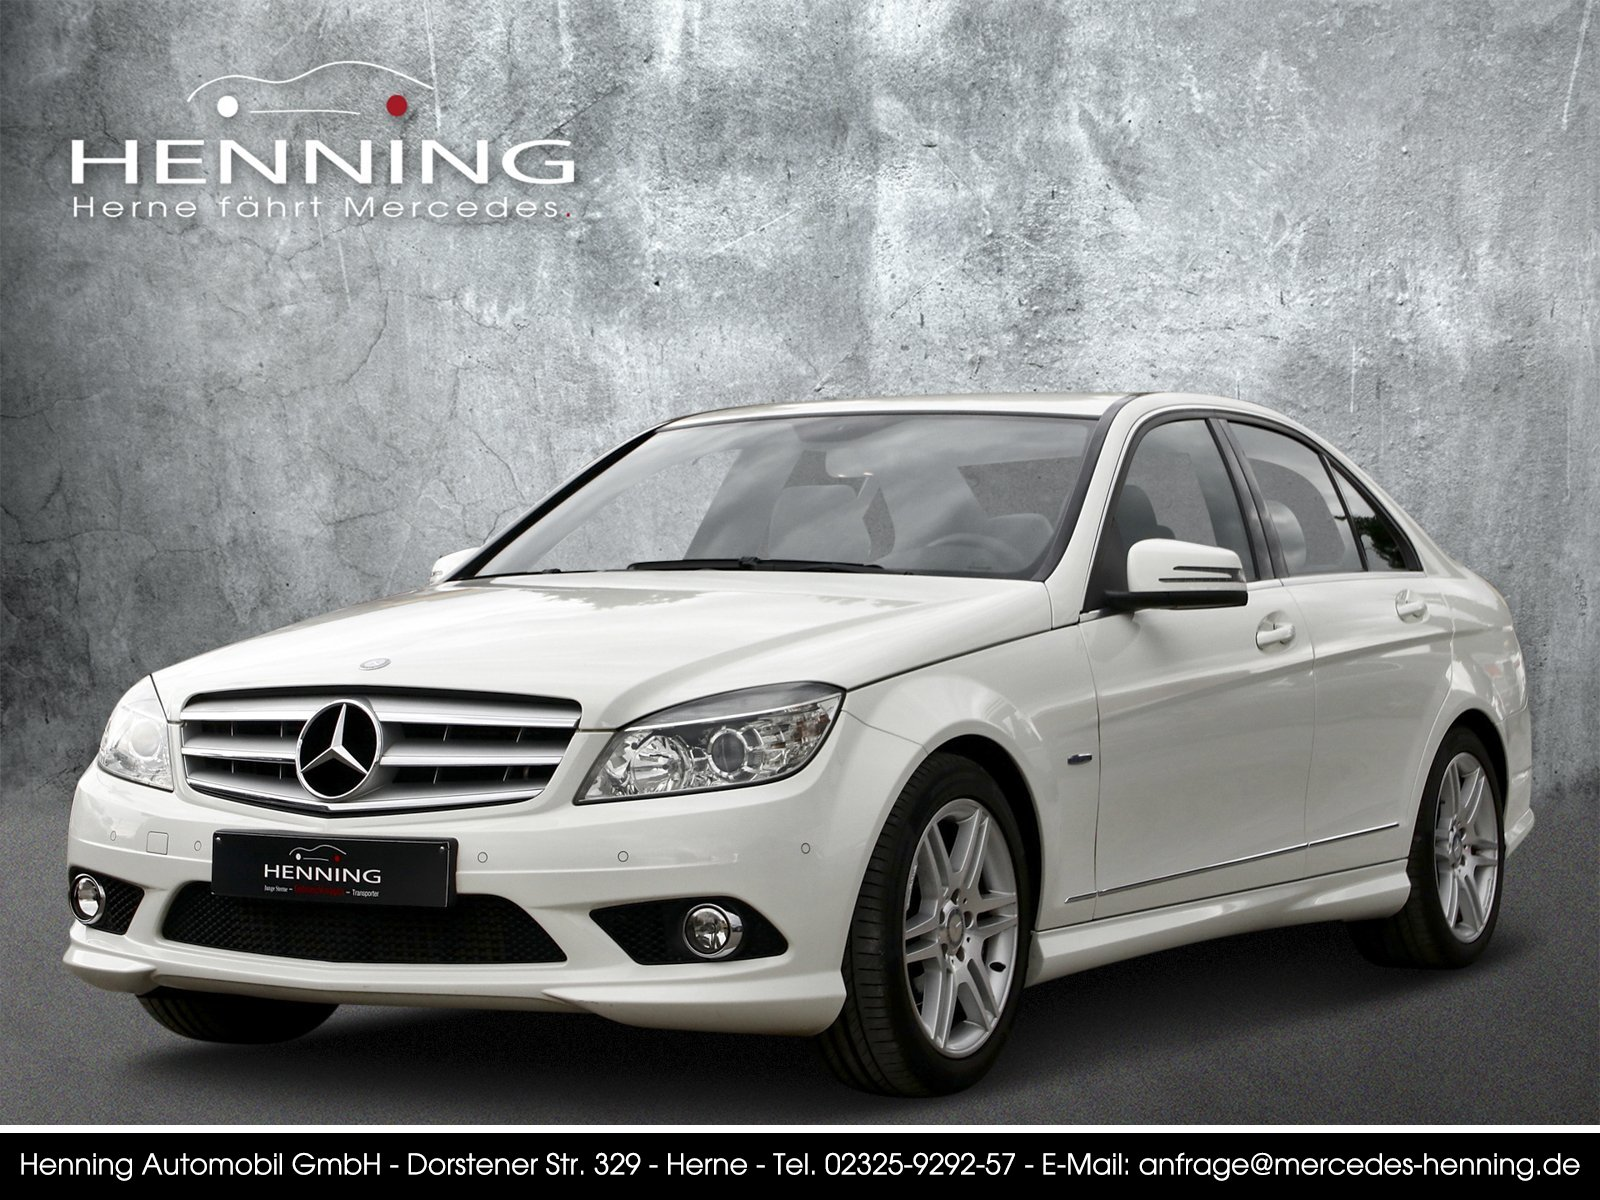 MERCEDES-BENZ C 180 CGI BlueEFFICIENCY Limousine